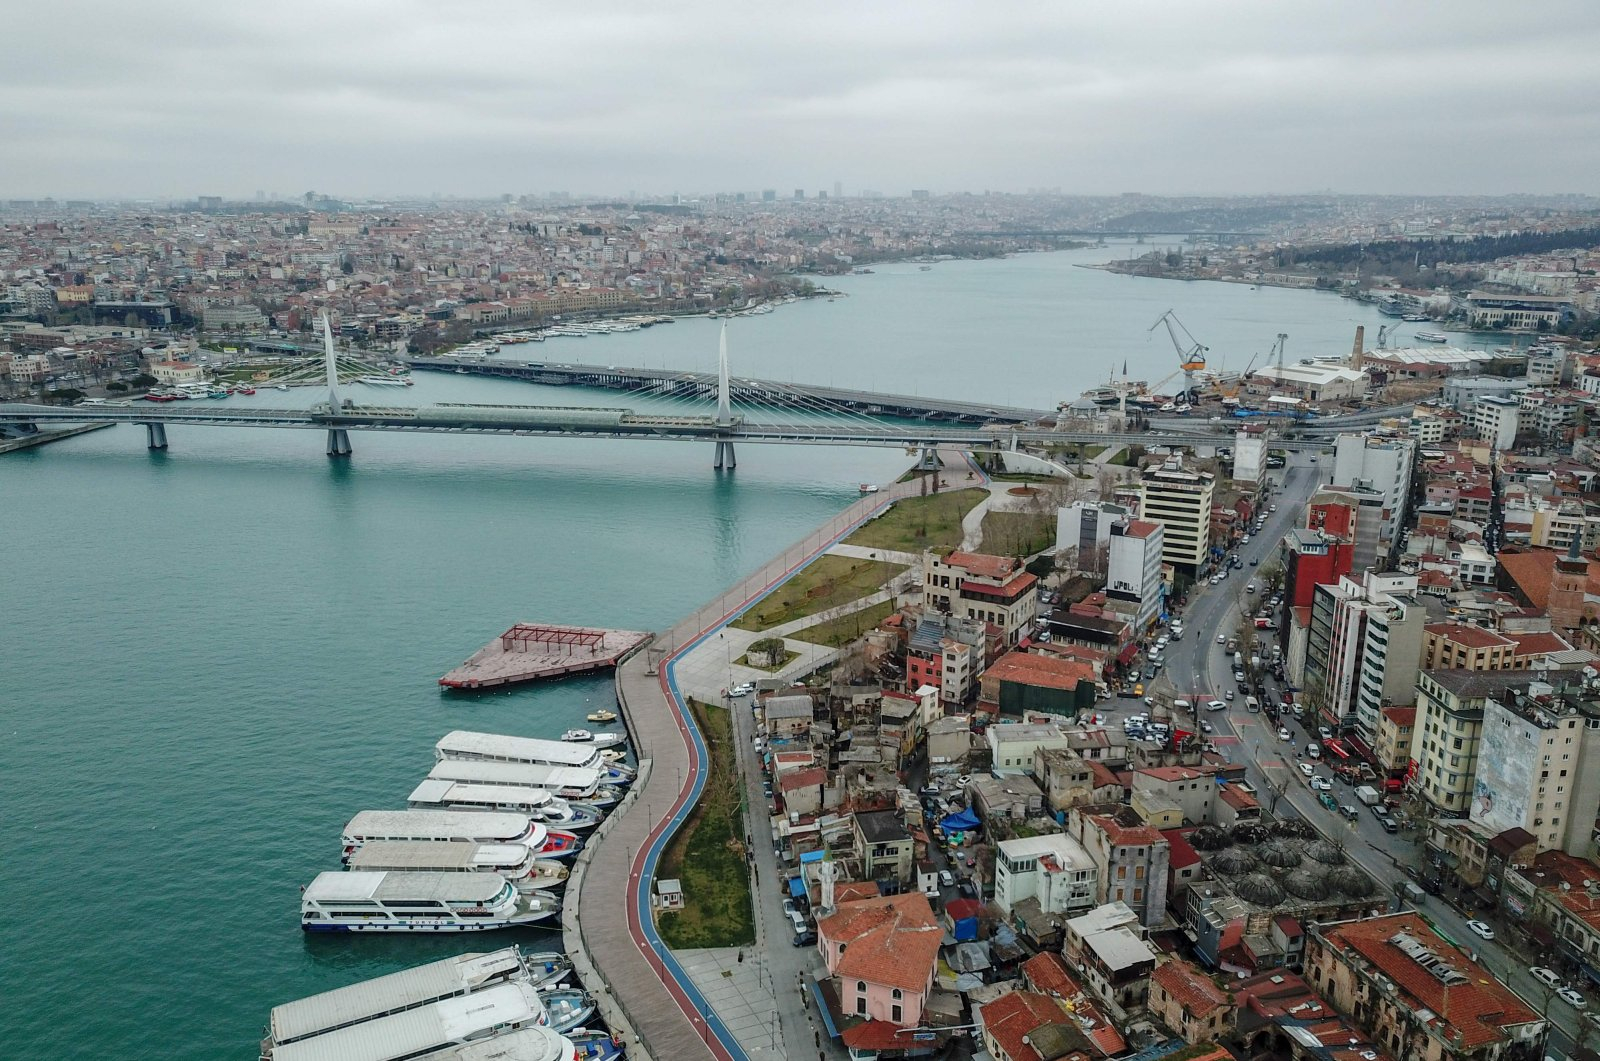 A view of the Golden Horn in central Istanbul during the coronavirus outbreak in Turkey, March 26, 2020. (AFP Photo)